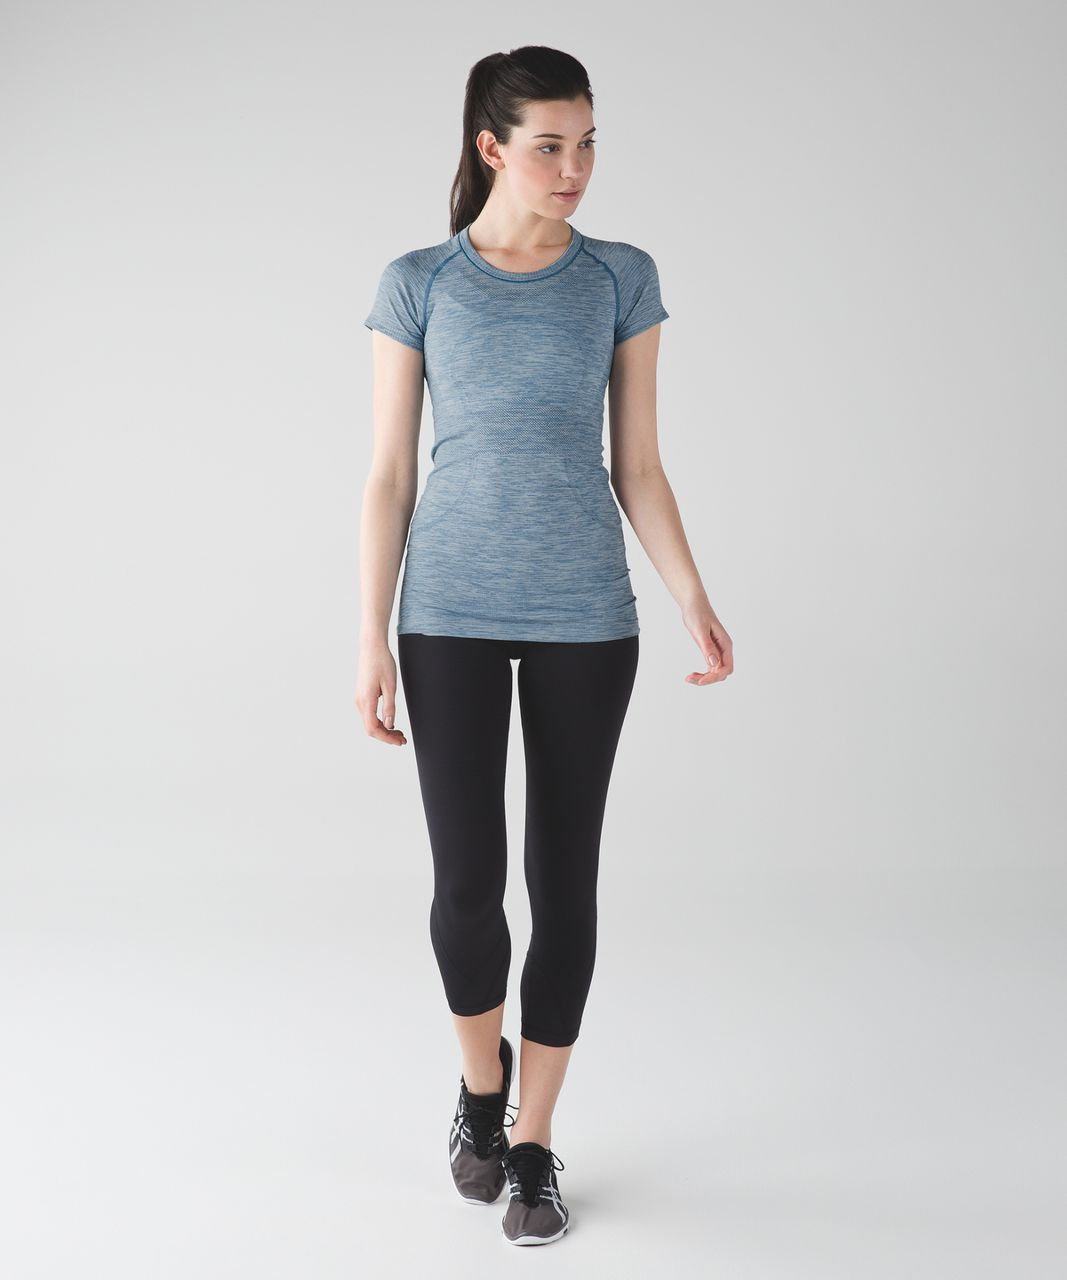 Lululemon Swiftly Tech Short Sleeve Crew - Heathered Tofino Teal